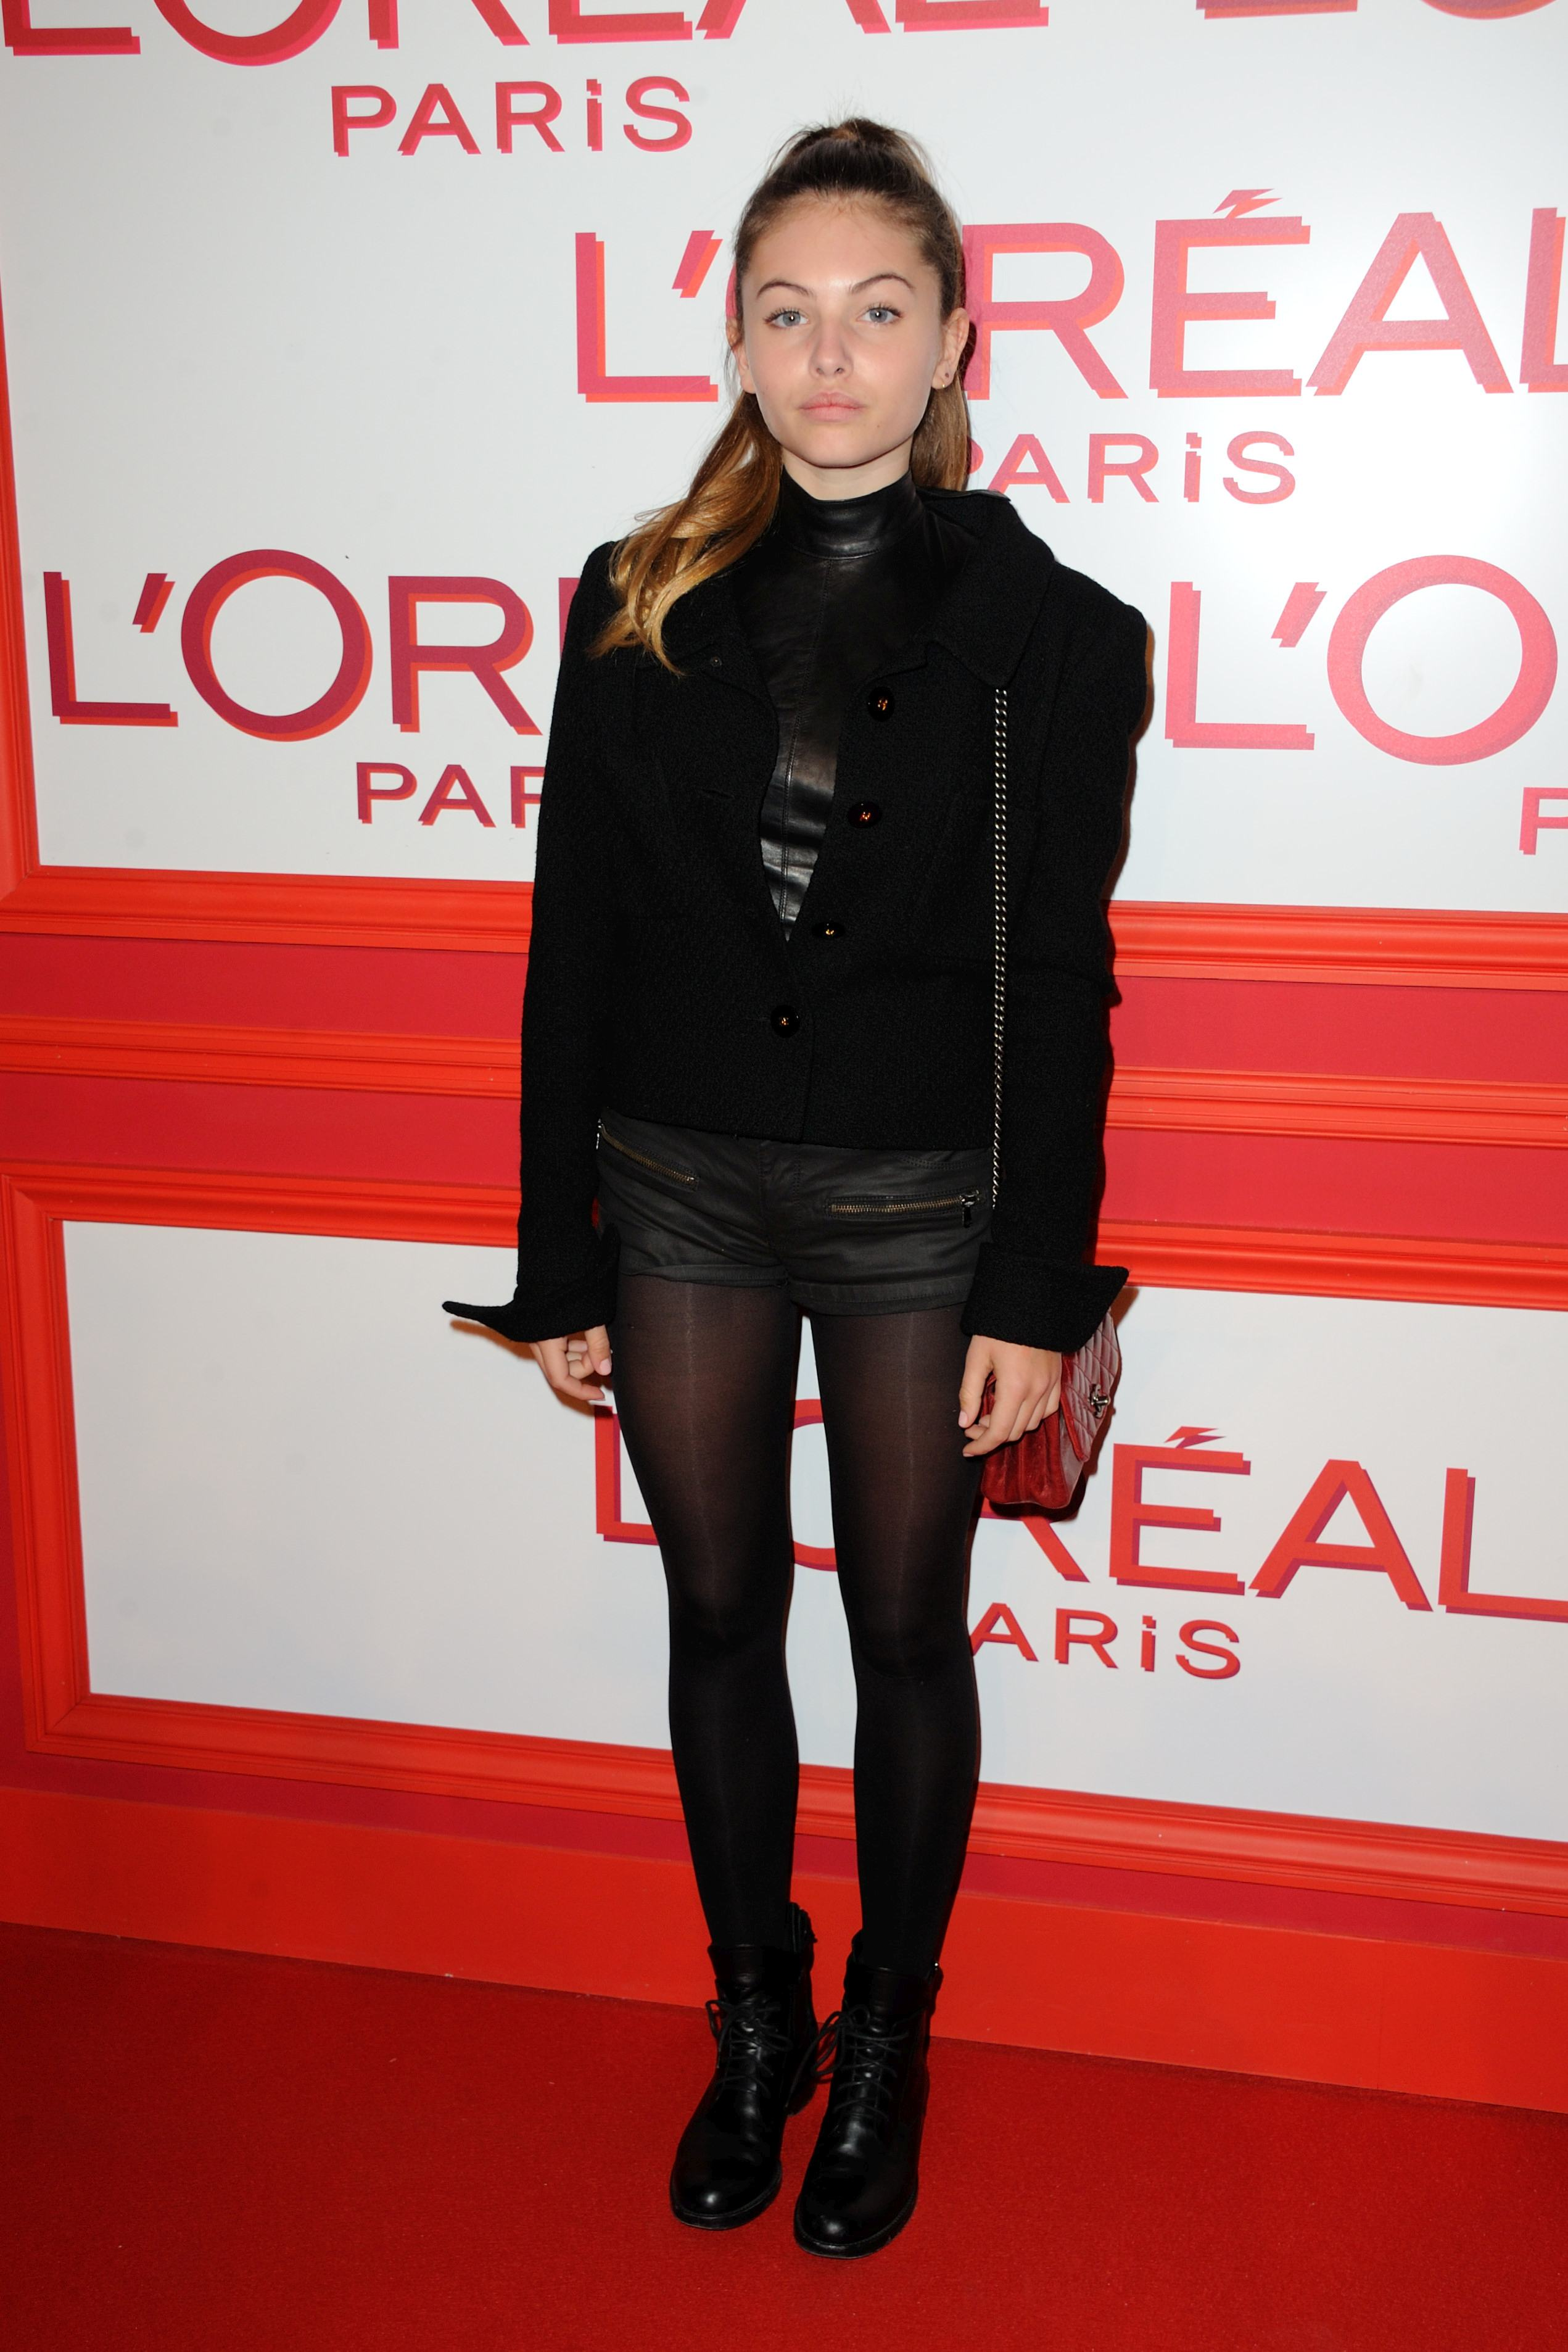 Thylane Blondeau, la un eveniment